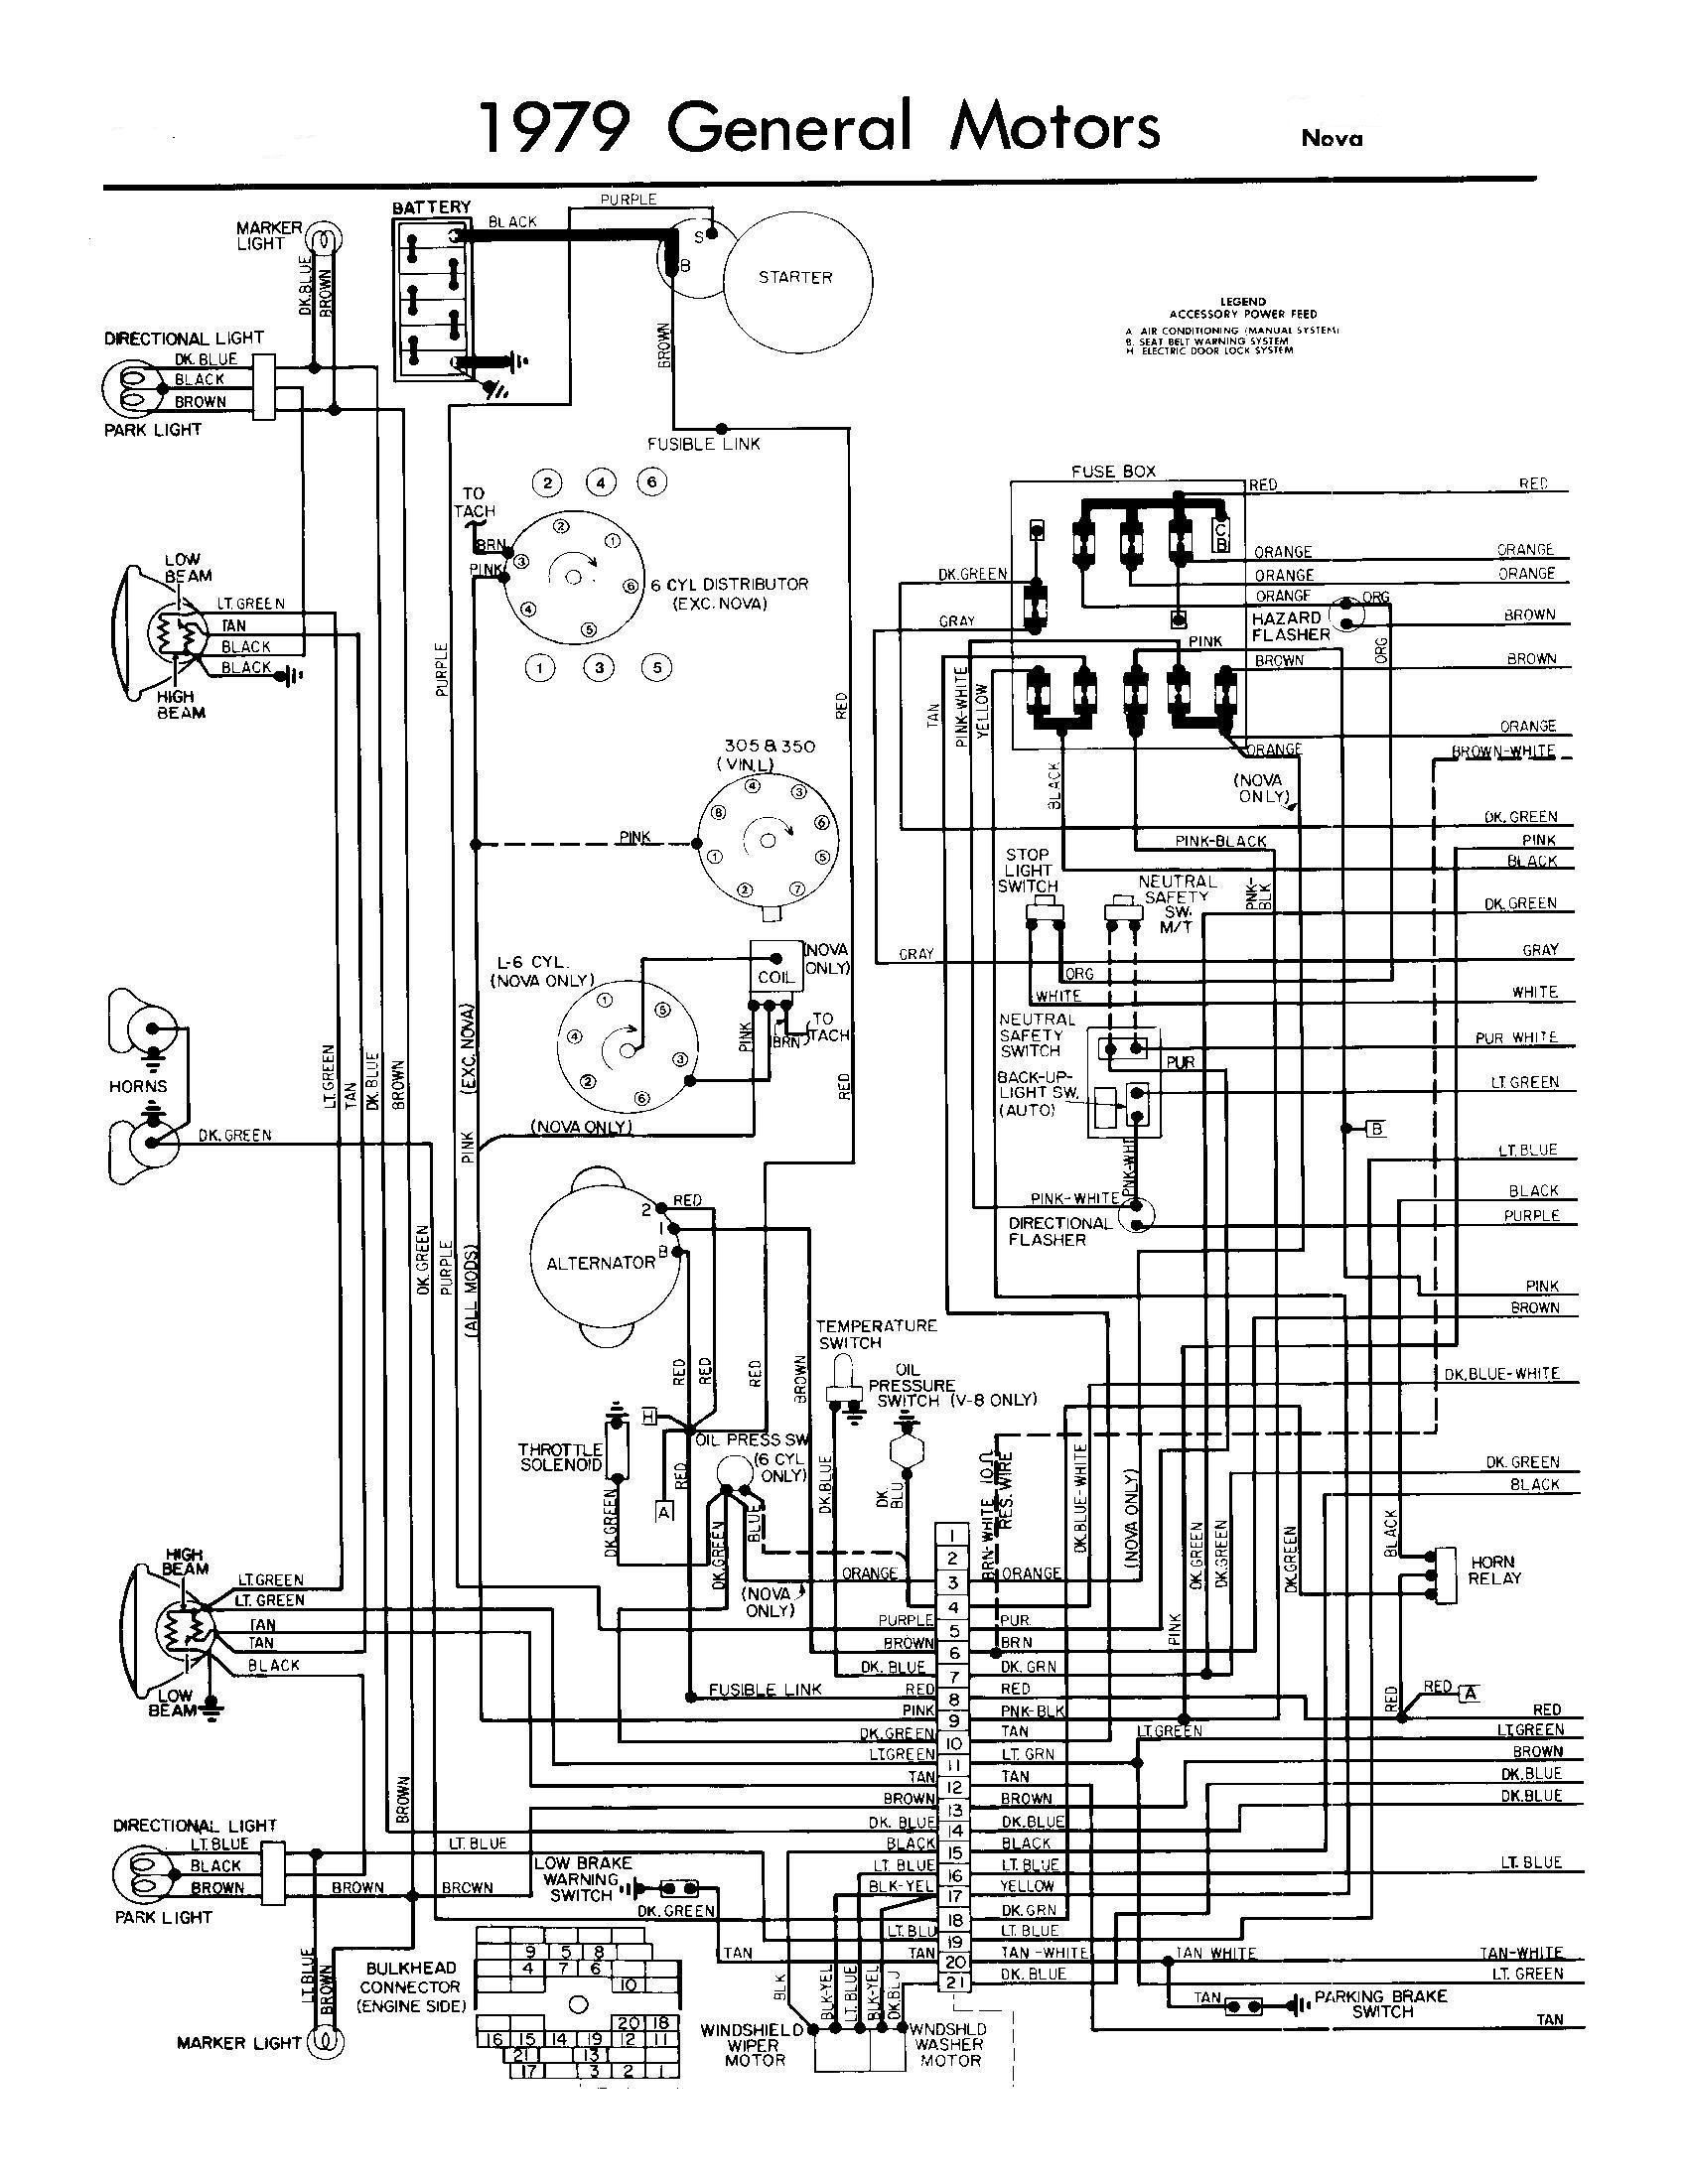 1987 gmc sierra wiring diagram trusted schematics wiring diagrams u2022 rh bestbooksrichtreasures com 94 gmc sierra wiring diagram 1994 gmc 1500 wiring diagram